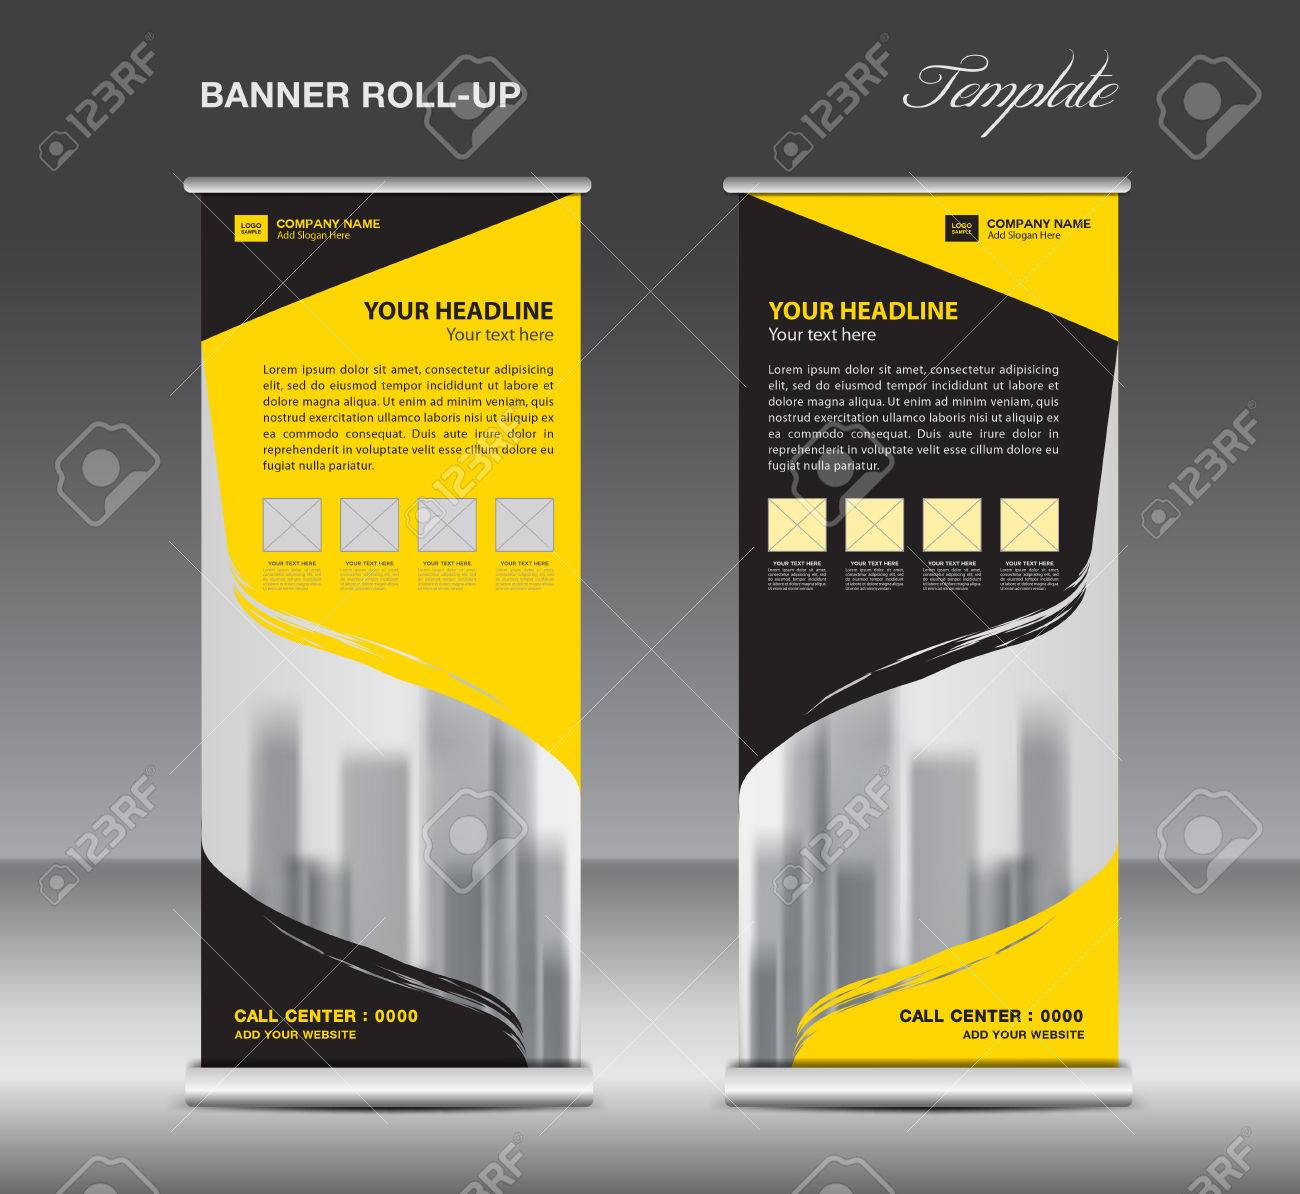 Yellow And Black Roll Up Banner Template Vector, Flyer ...